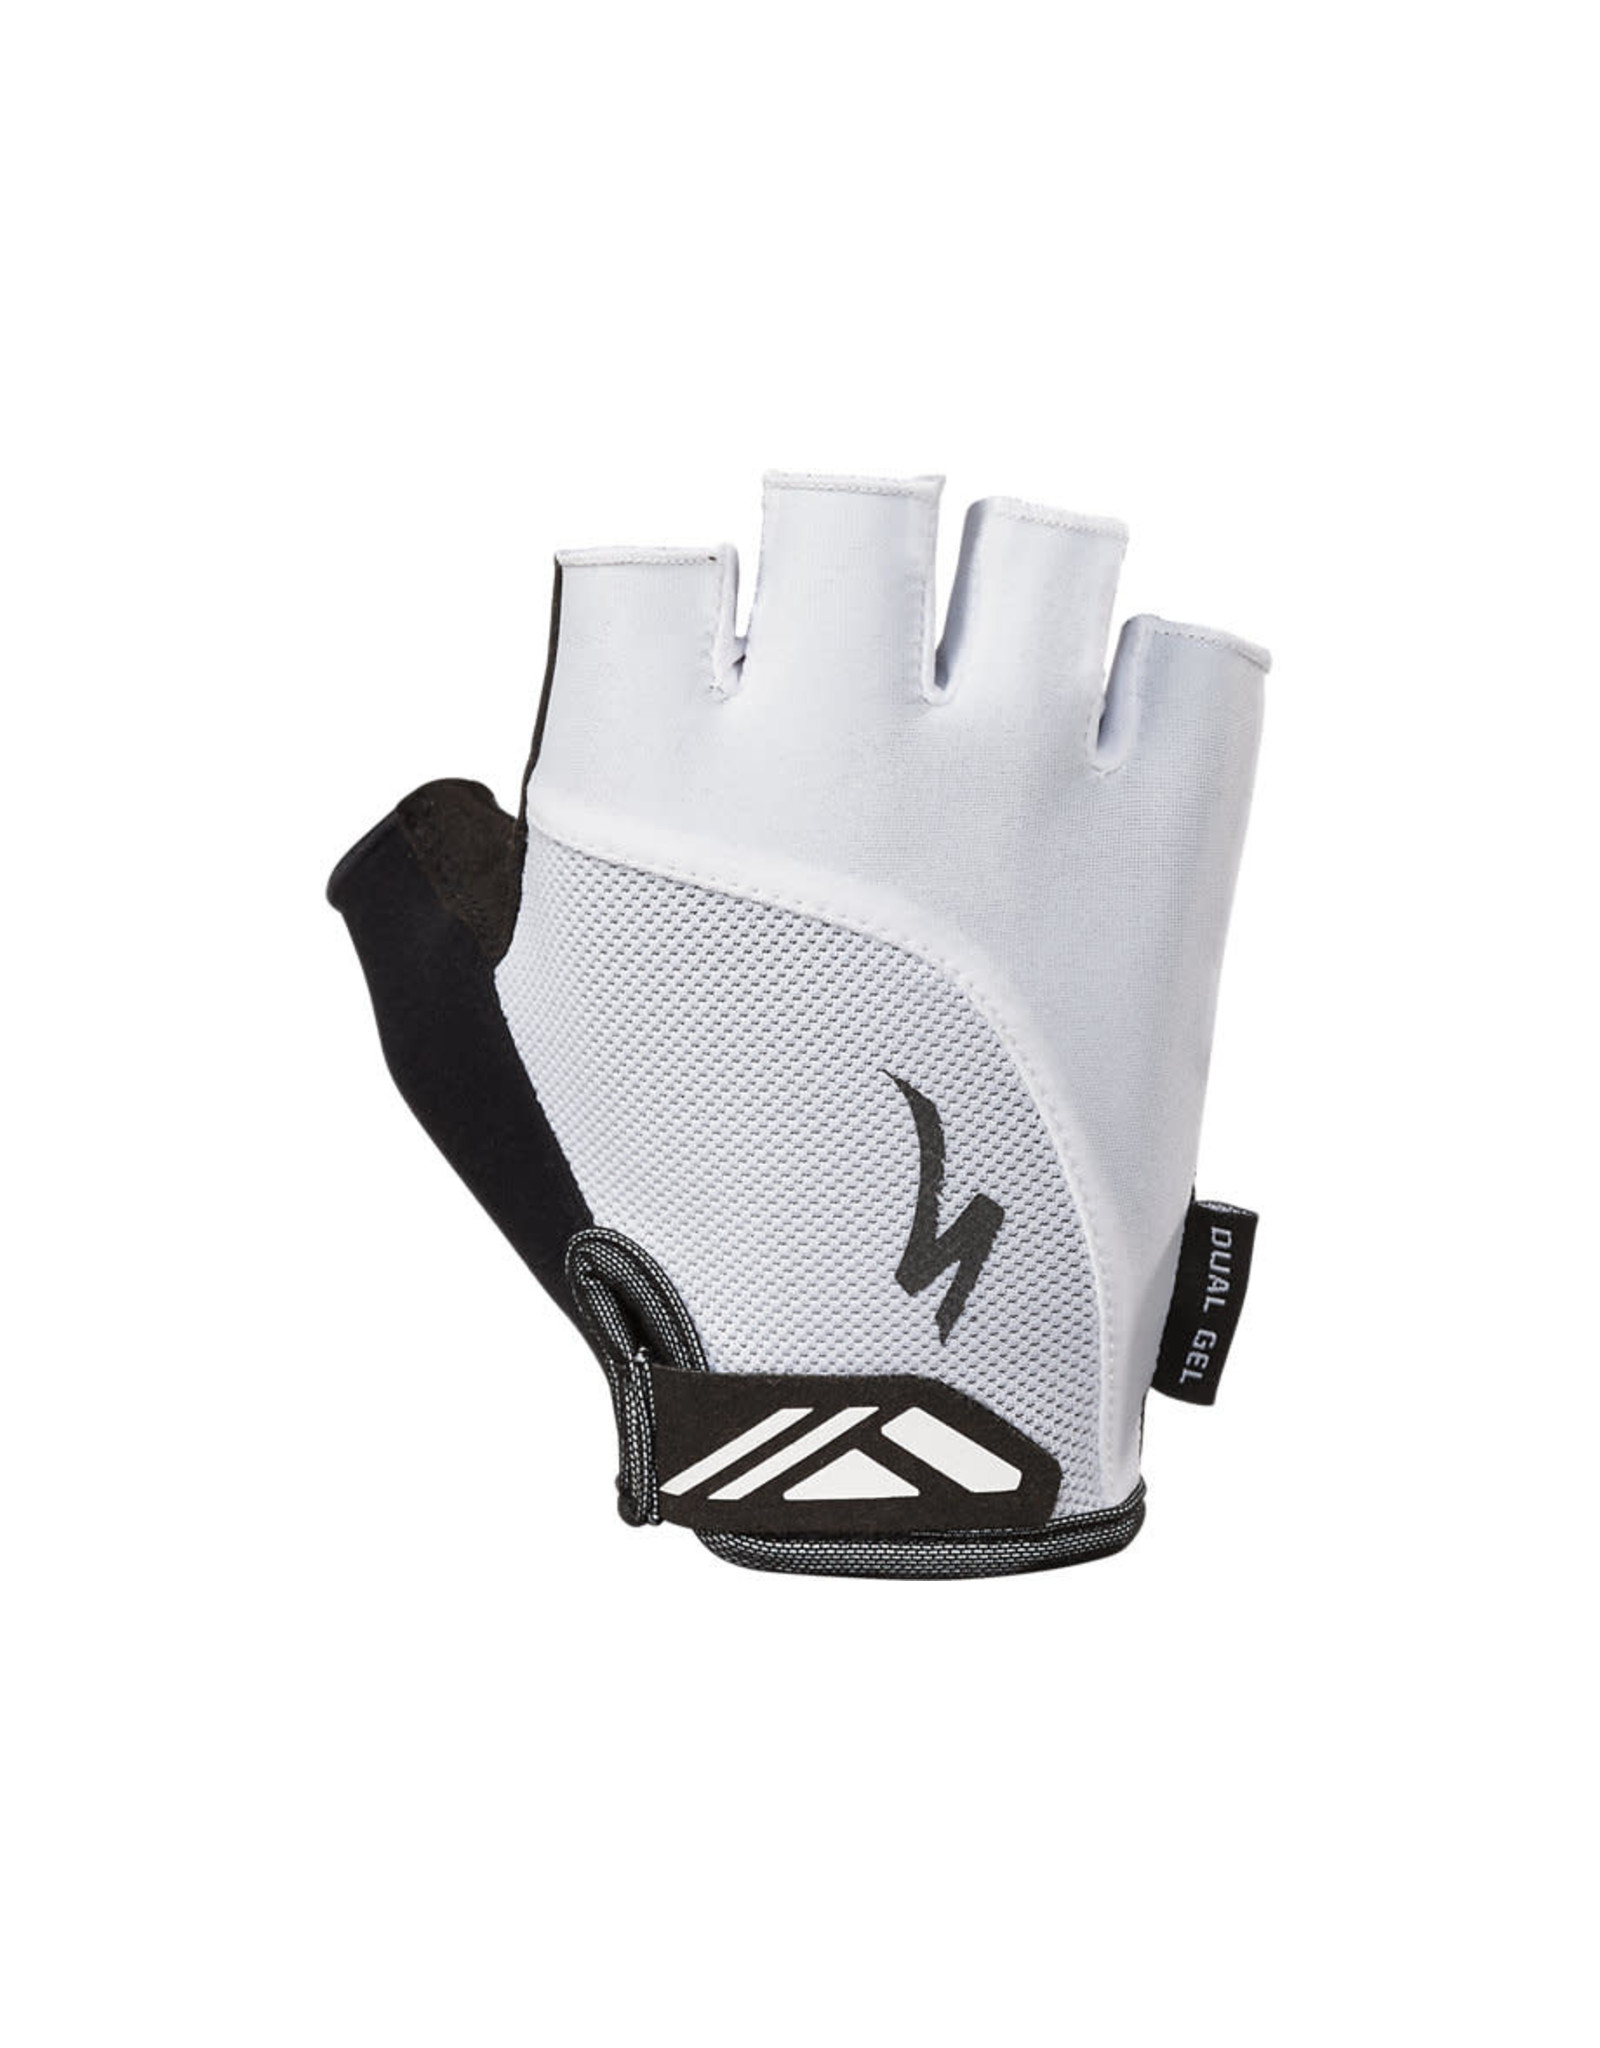 Specialized Bikes BG DUAL GEL GLOVE SF WMN